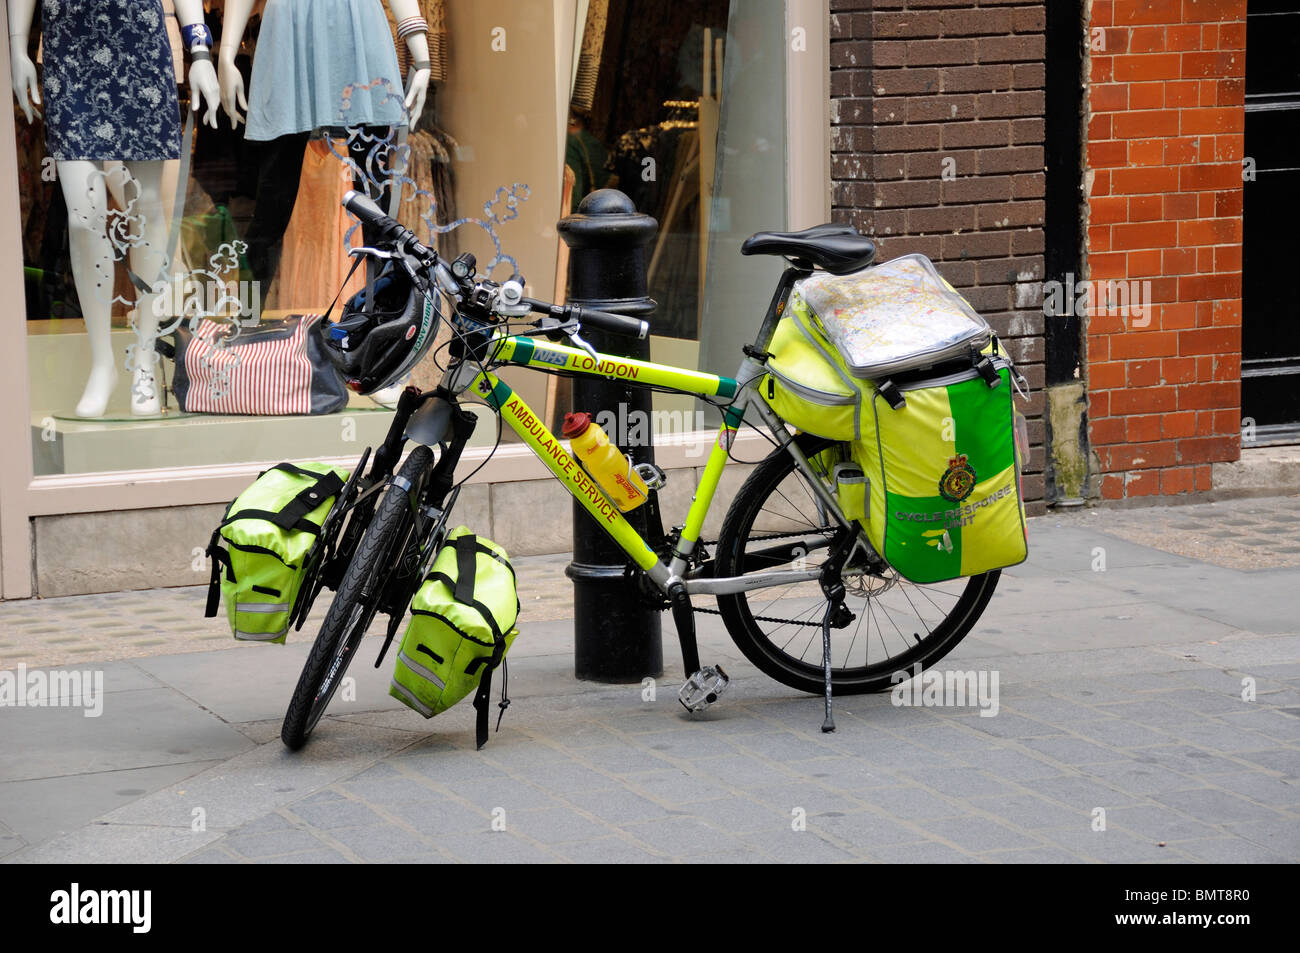 Cycle Response Unit, London Ambulance Service paramedic's bike in street - Stock Image